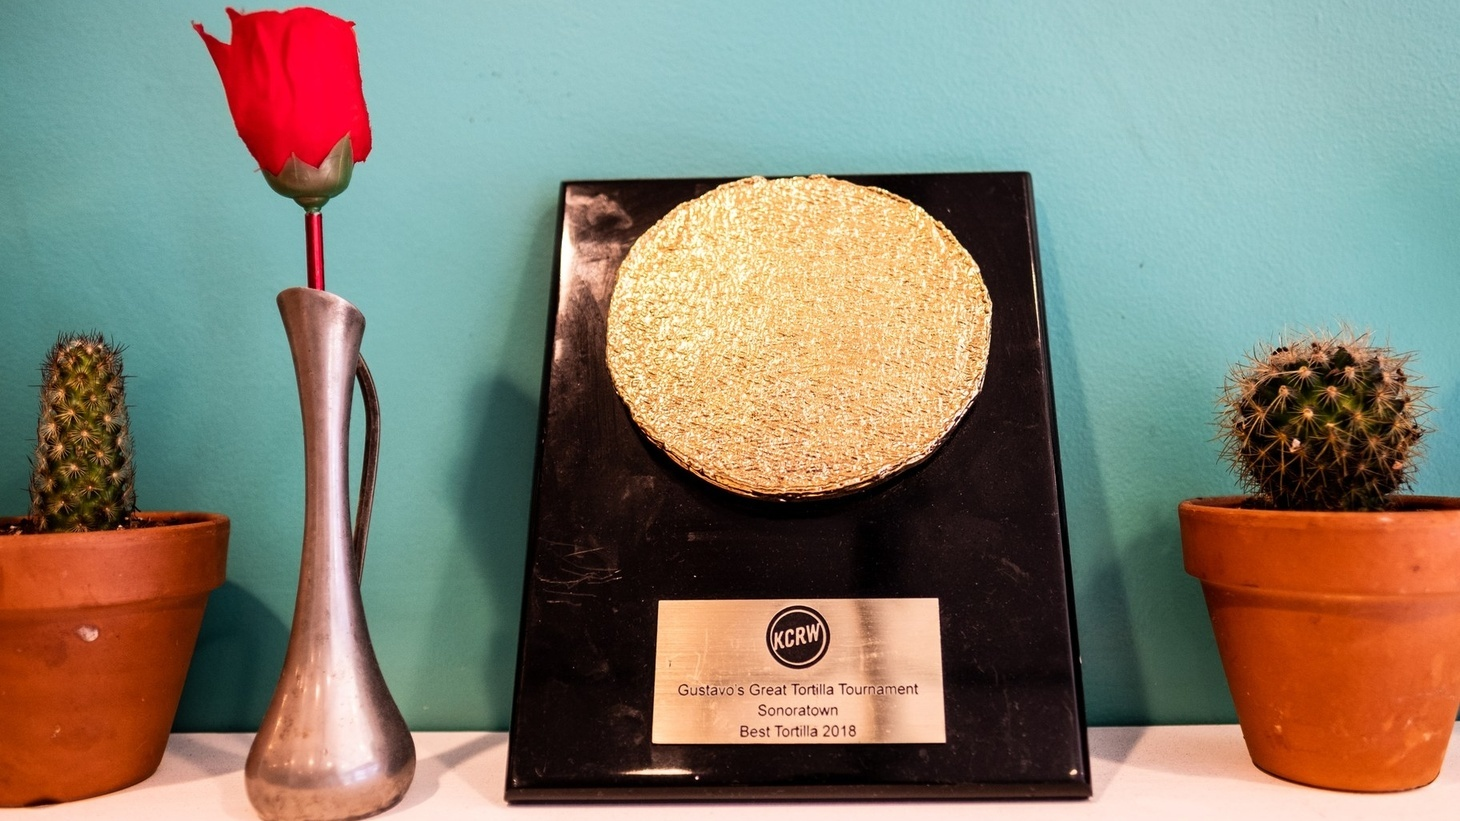 Good Food is one week closer to handing out the Golden Tortilla trophy in the corn and flour tortilla categories.